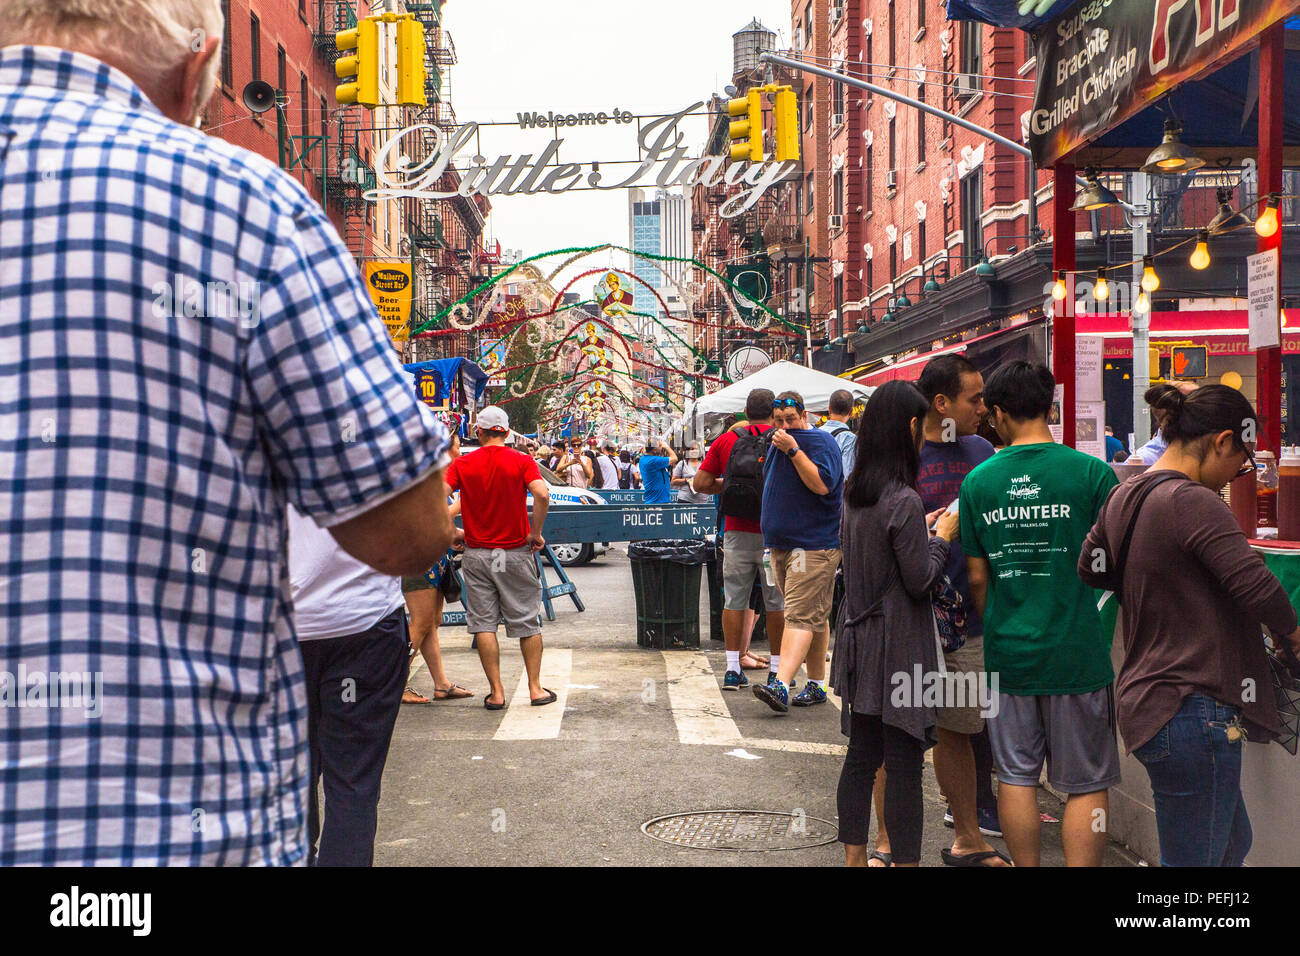 New York City, New York - September 21, 2017:  View of New York City Little Italy in downtown Manhattan of the Annual Feast of San Gennaro with food v - Stock Image